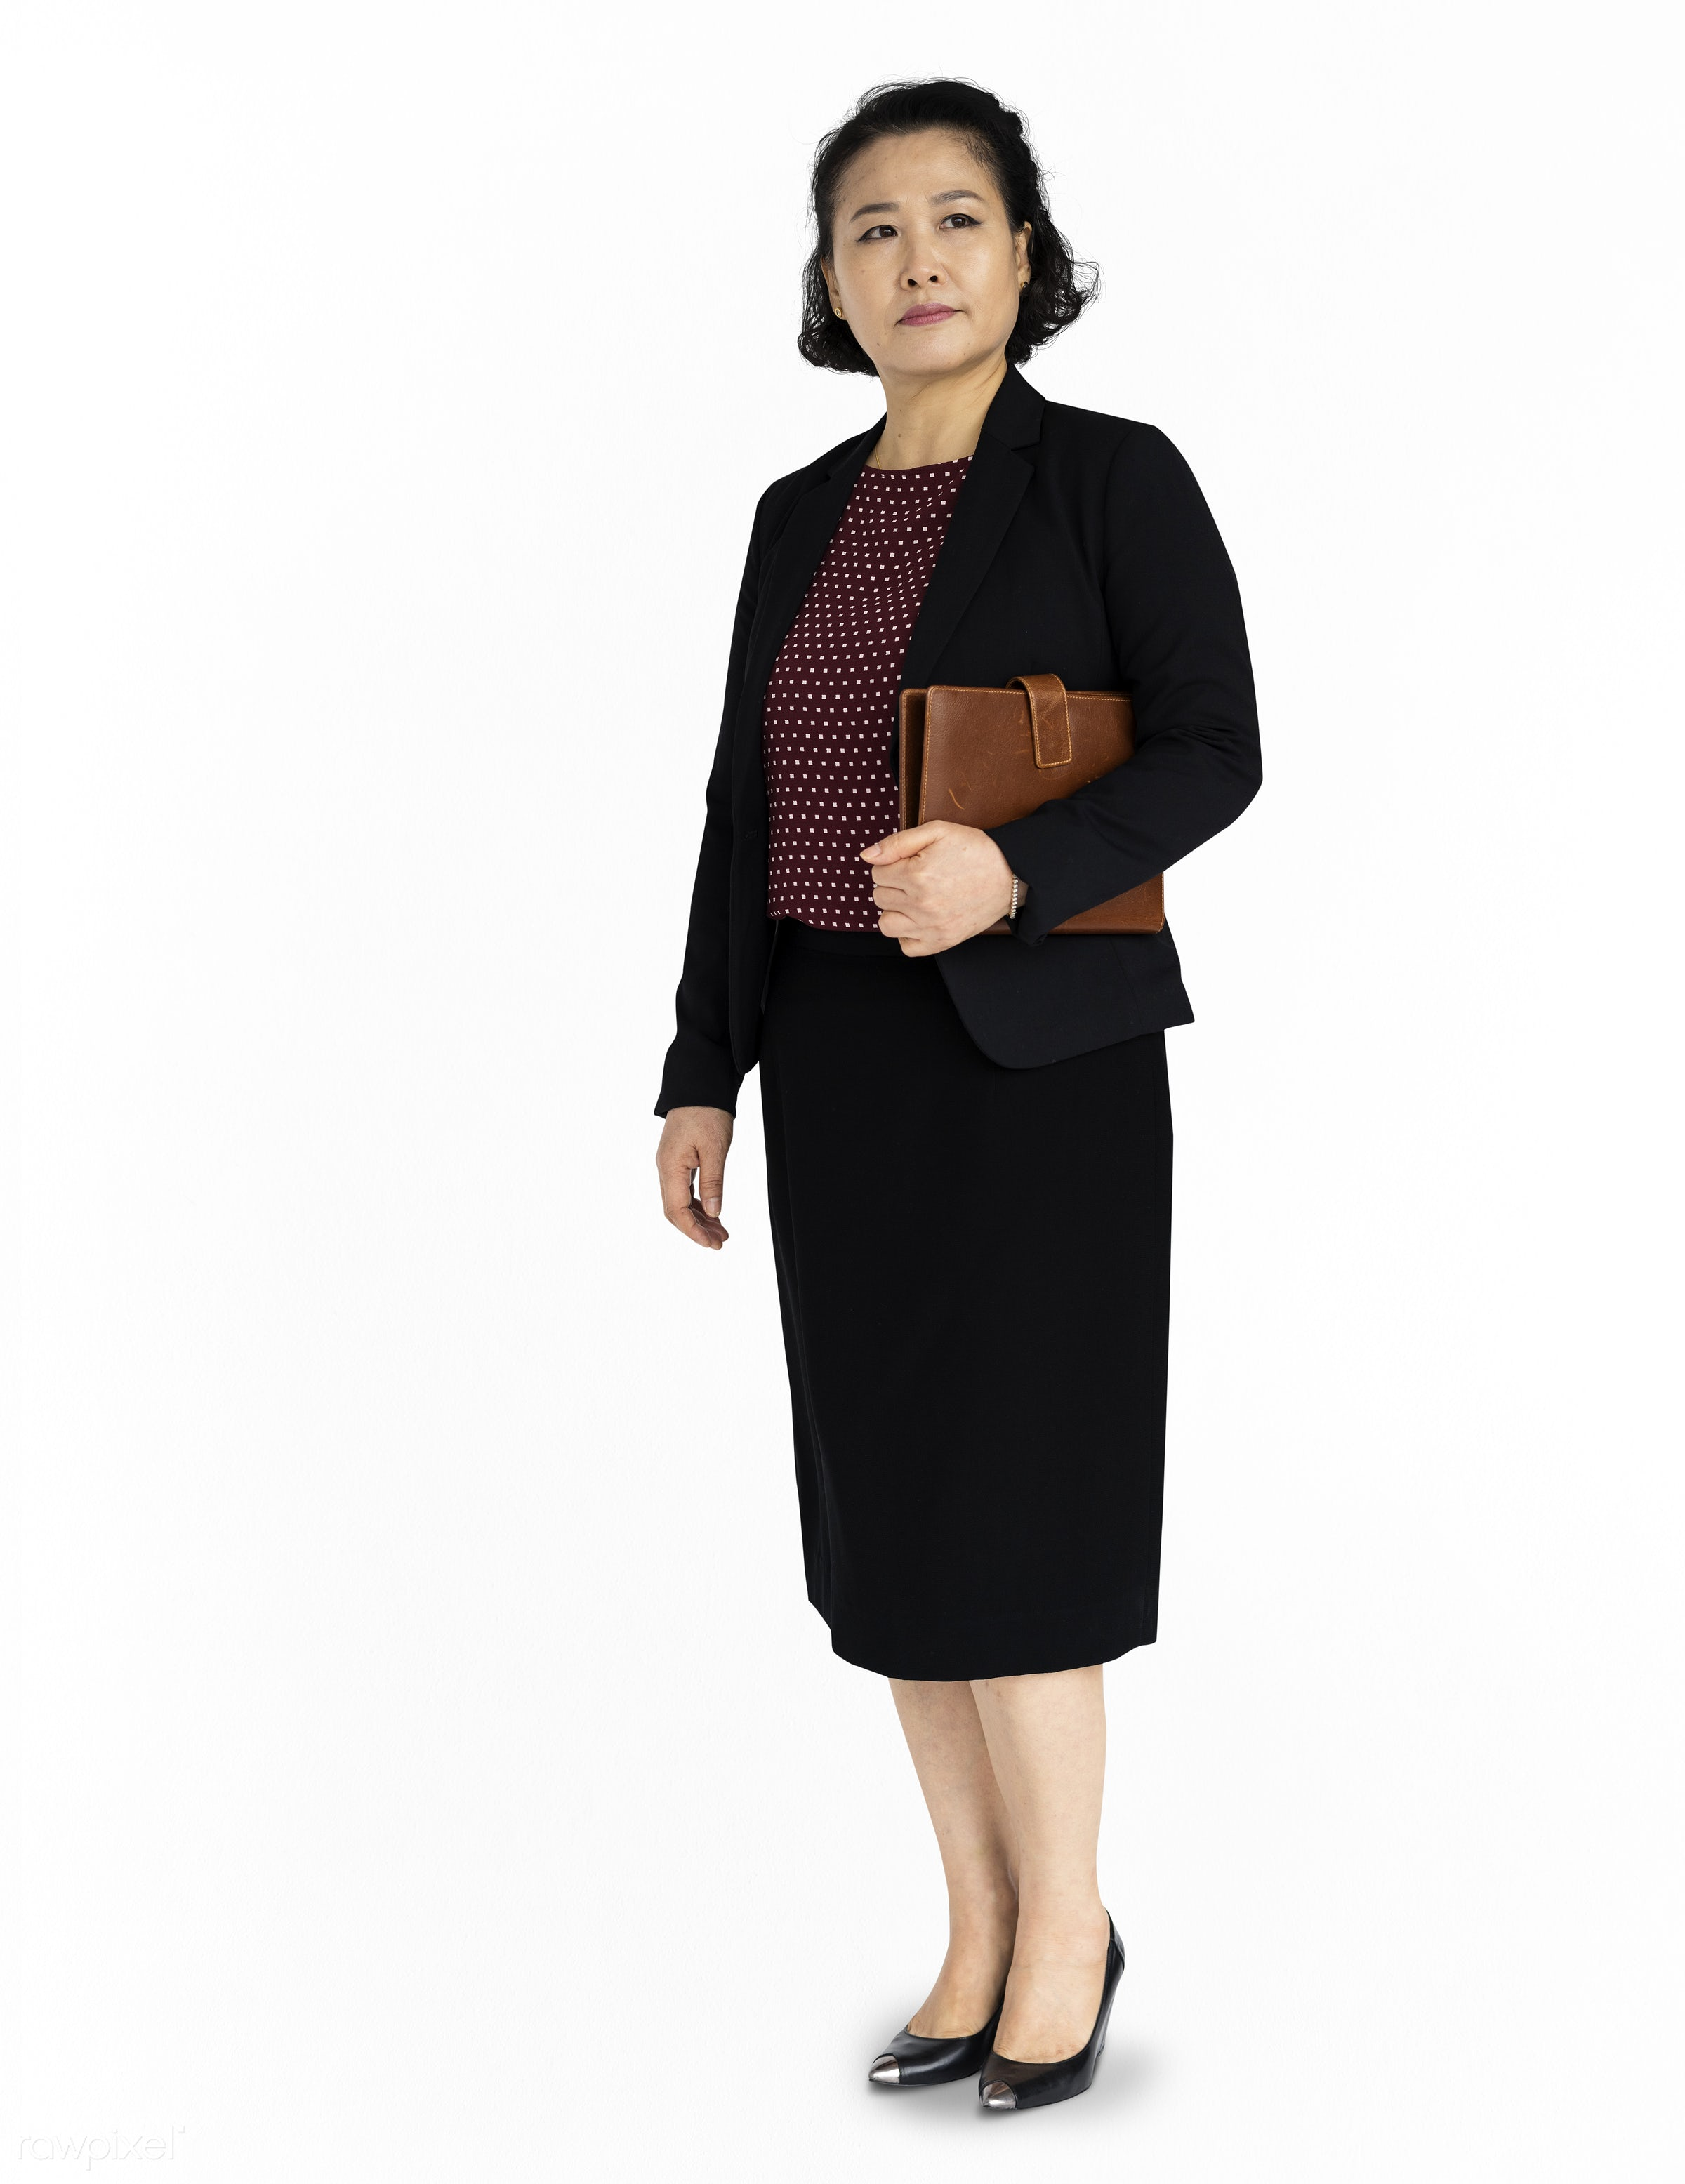 studio, expression, person, business wear, isolated on white, people, asian, pose, girl, woman, serious, formal attire,...